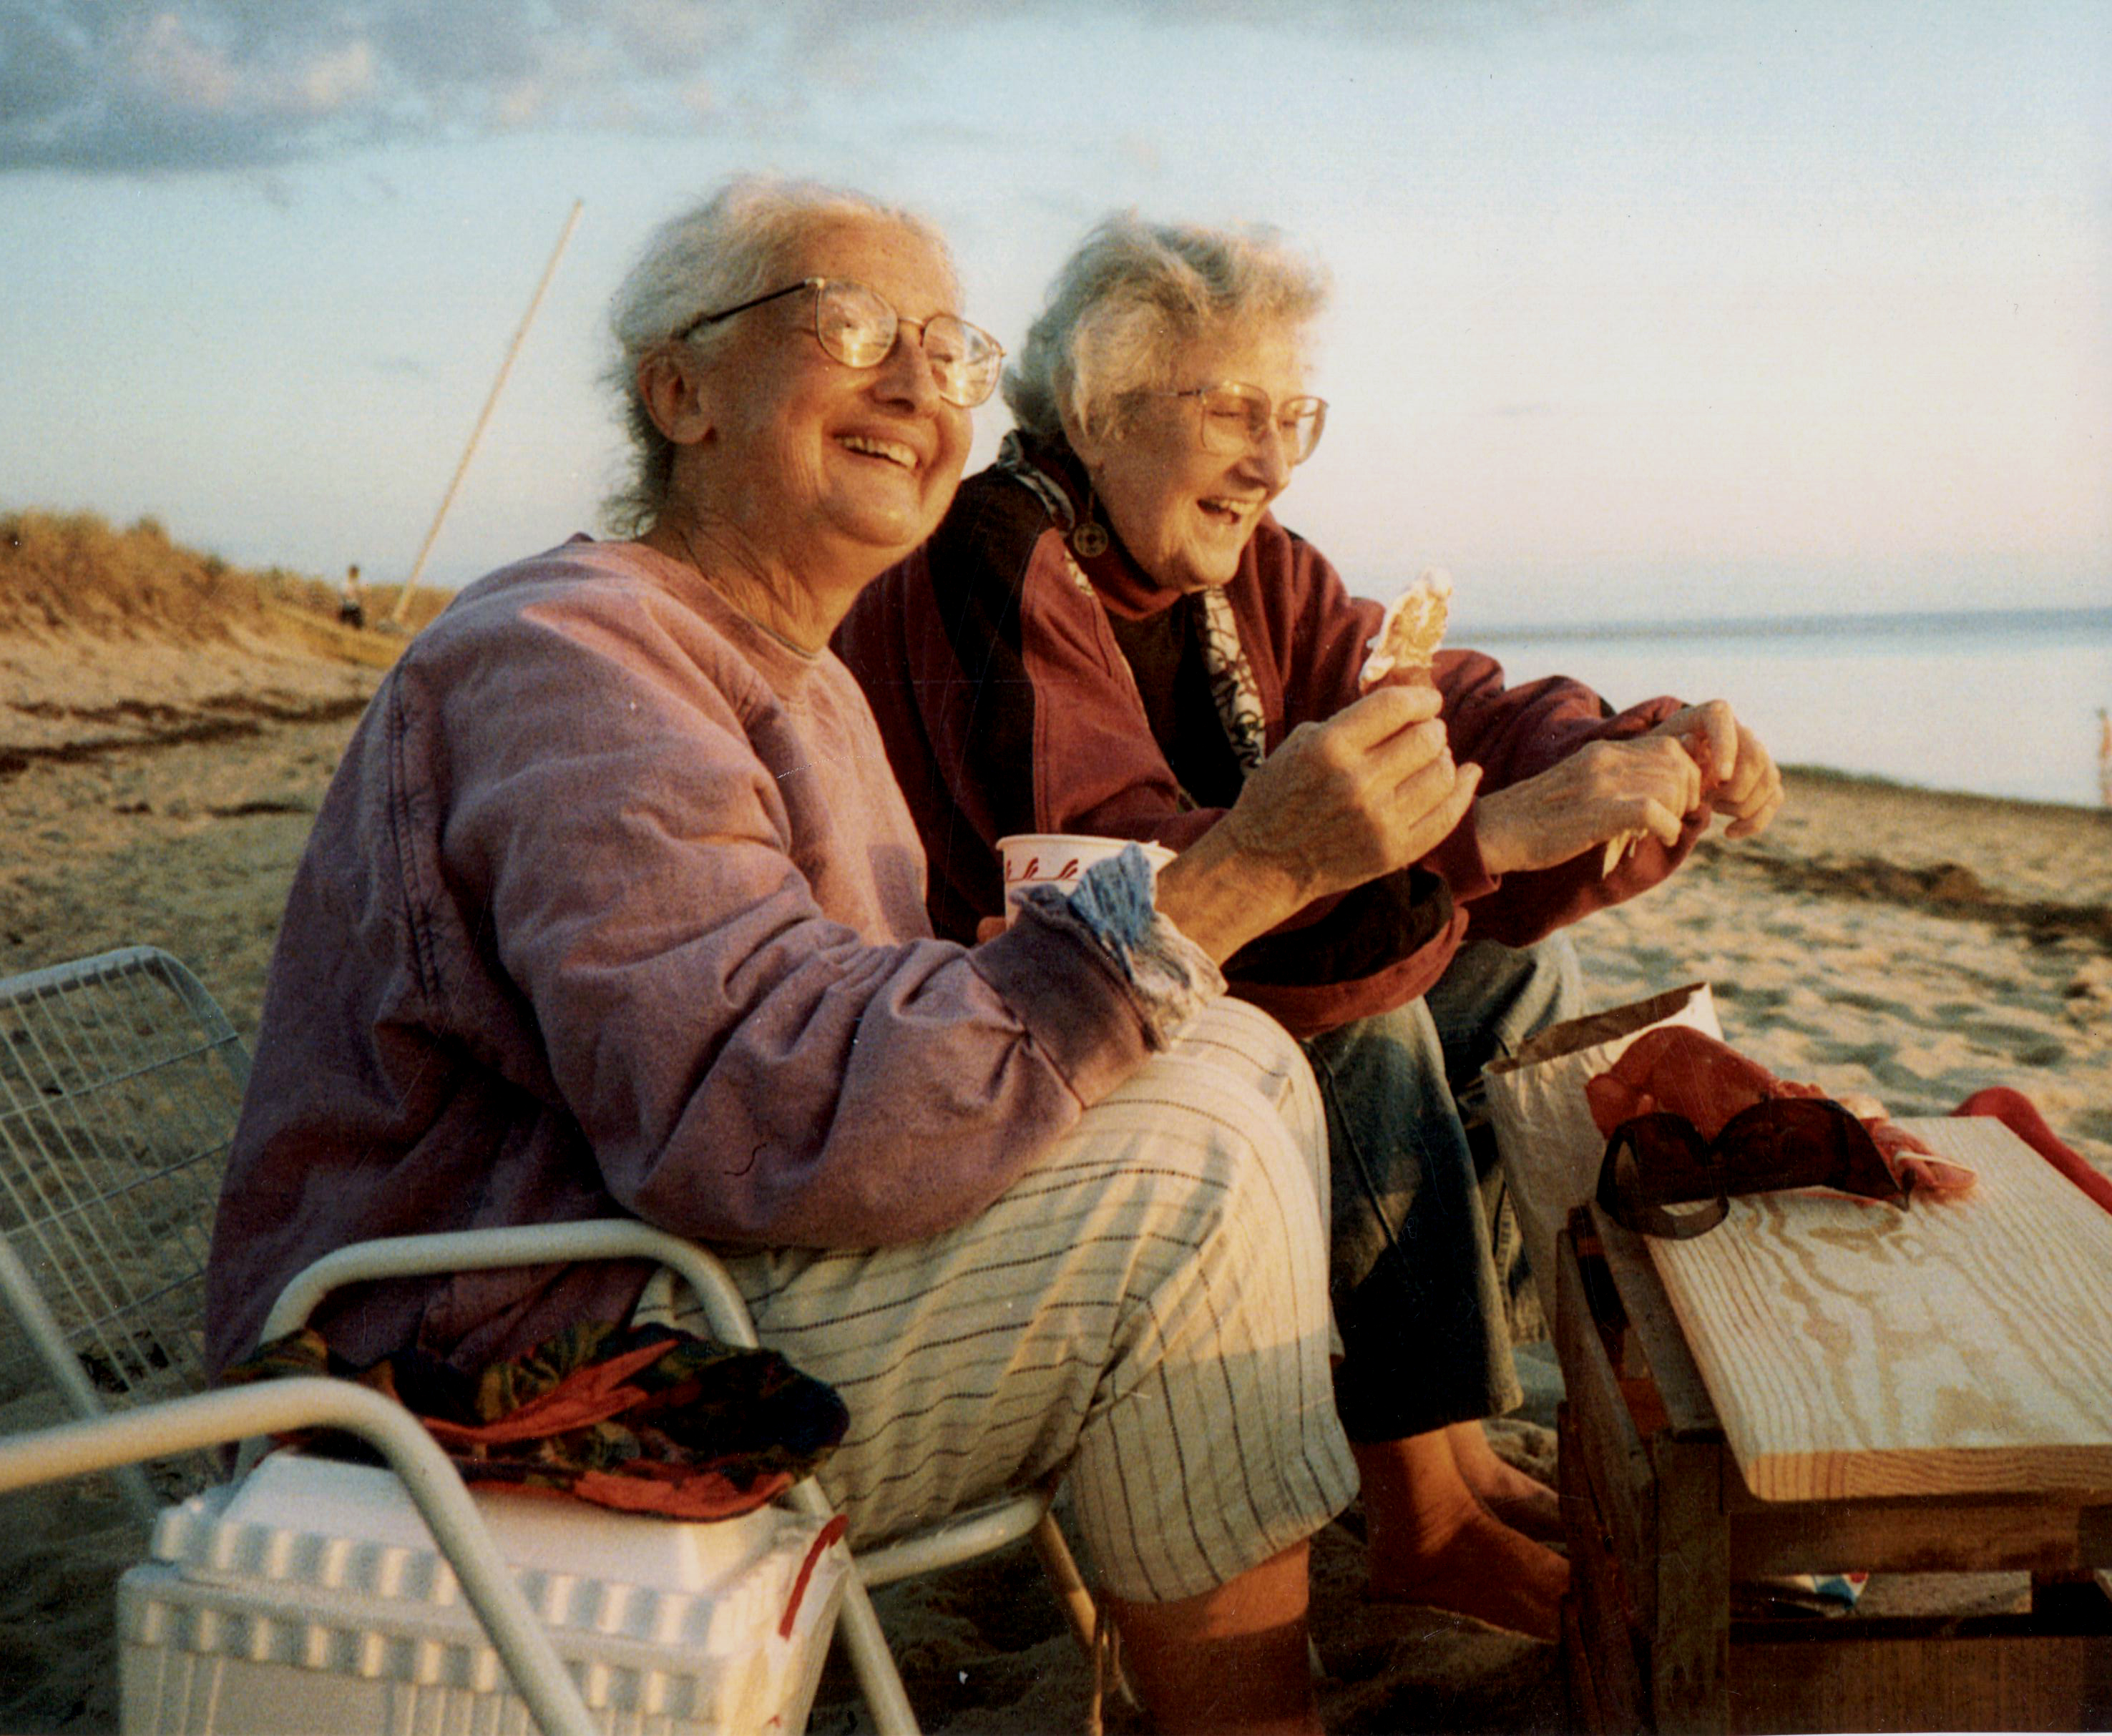 Karen Karnes (left) with Mikhail Zakin (right) on Cape Cod. From Kathryn Hall's article in Vol. 43, No. 1.